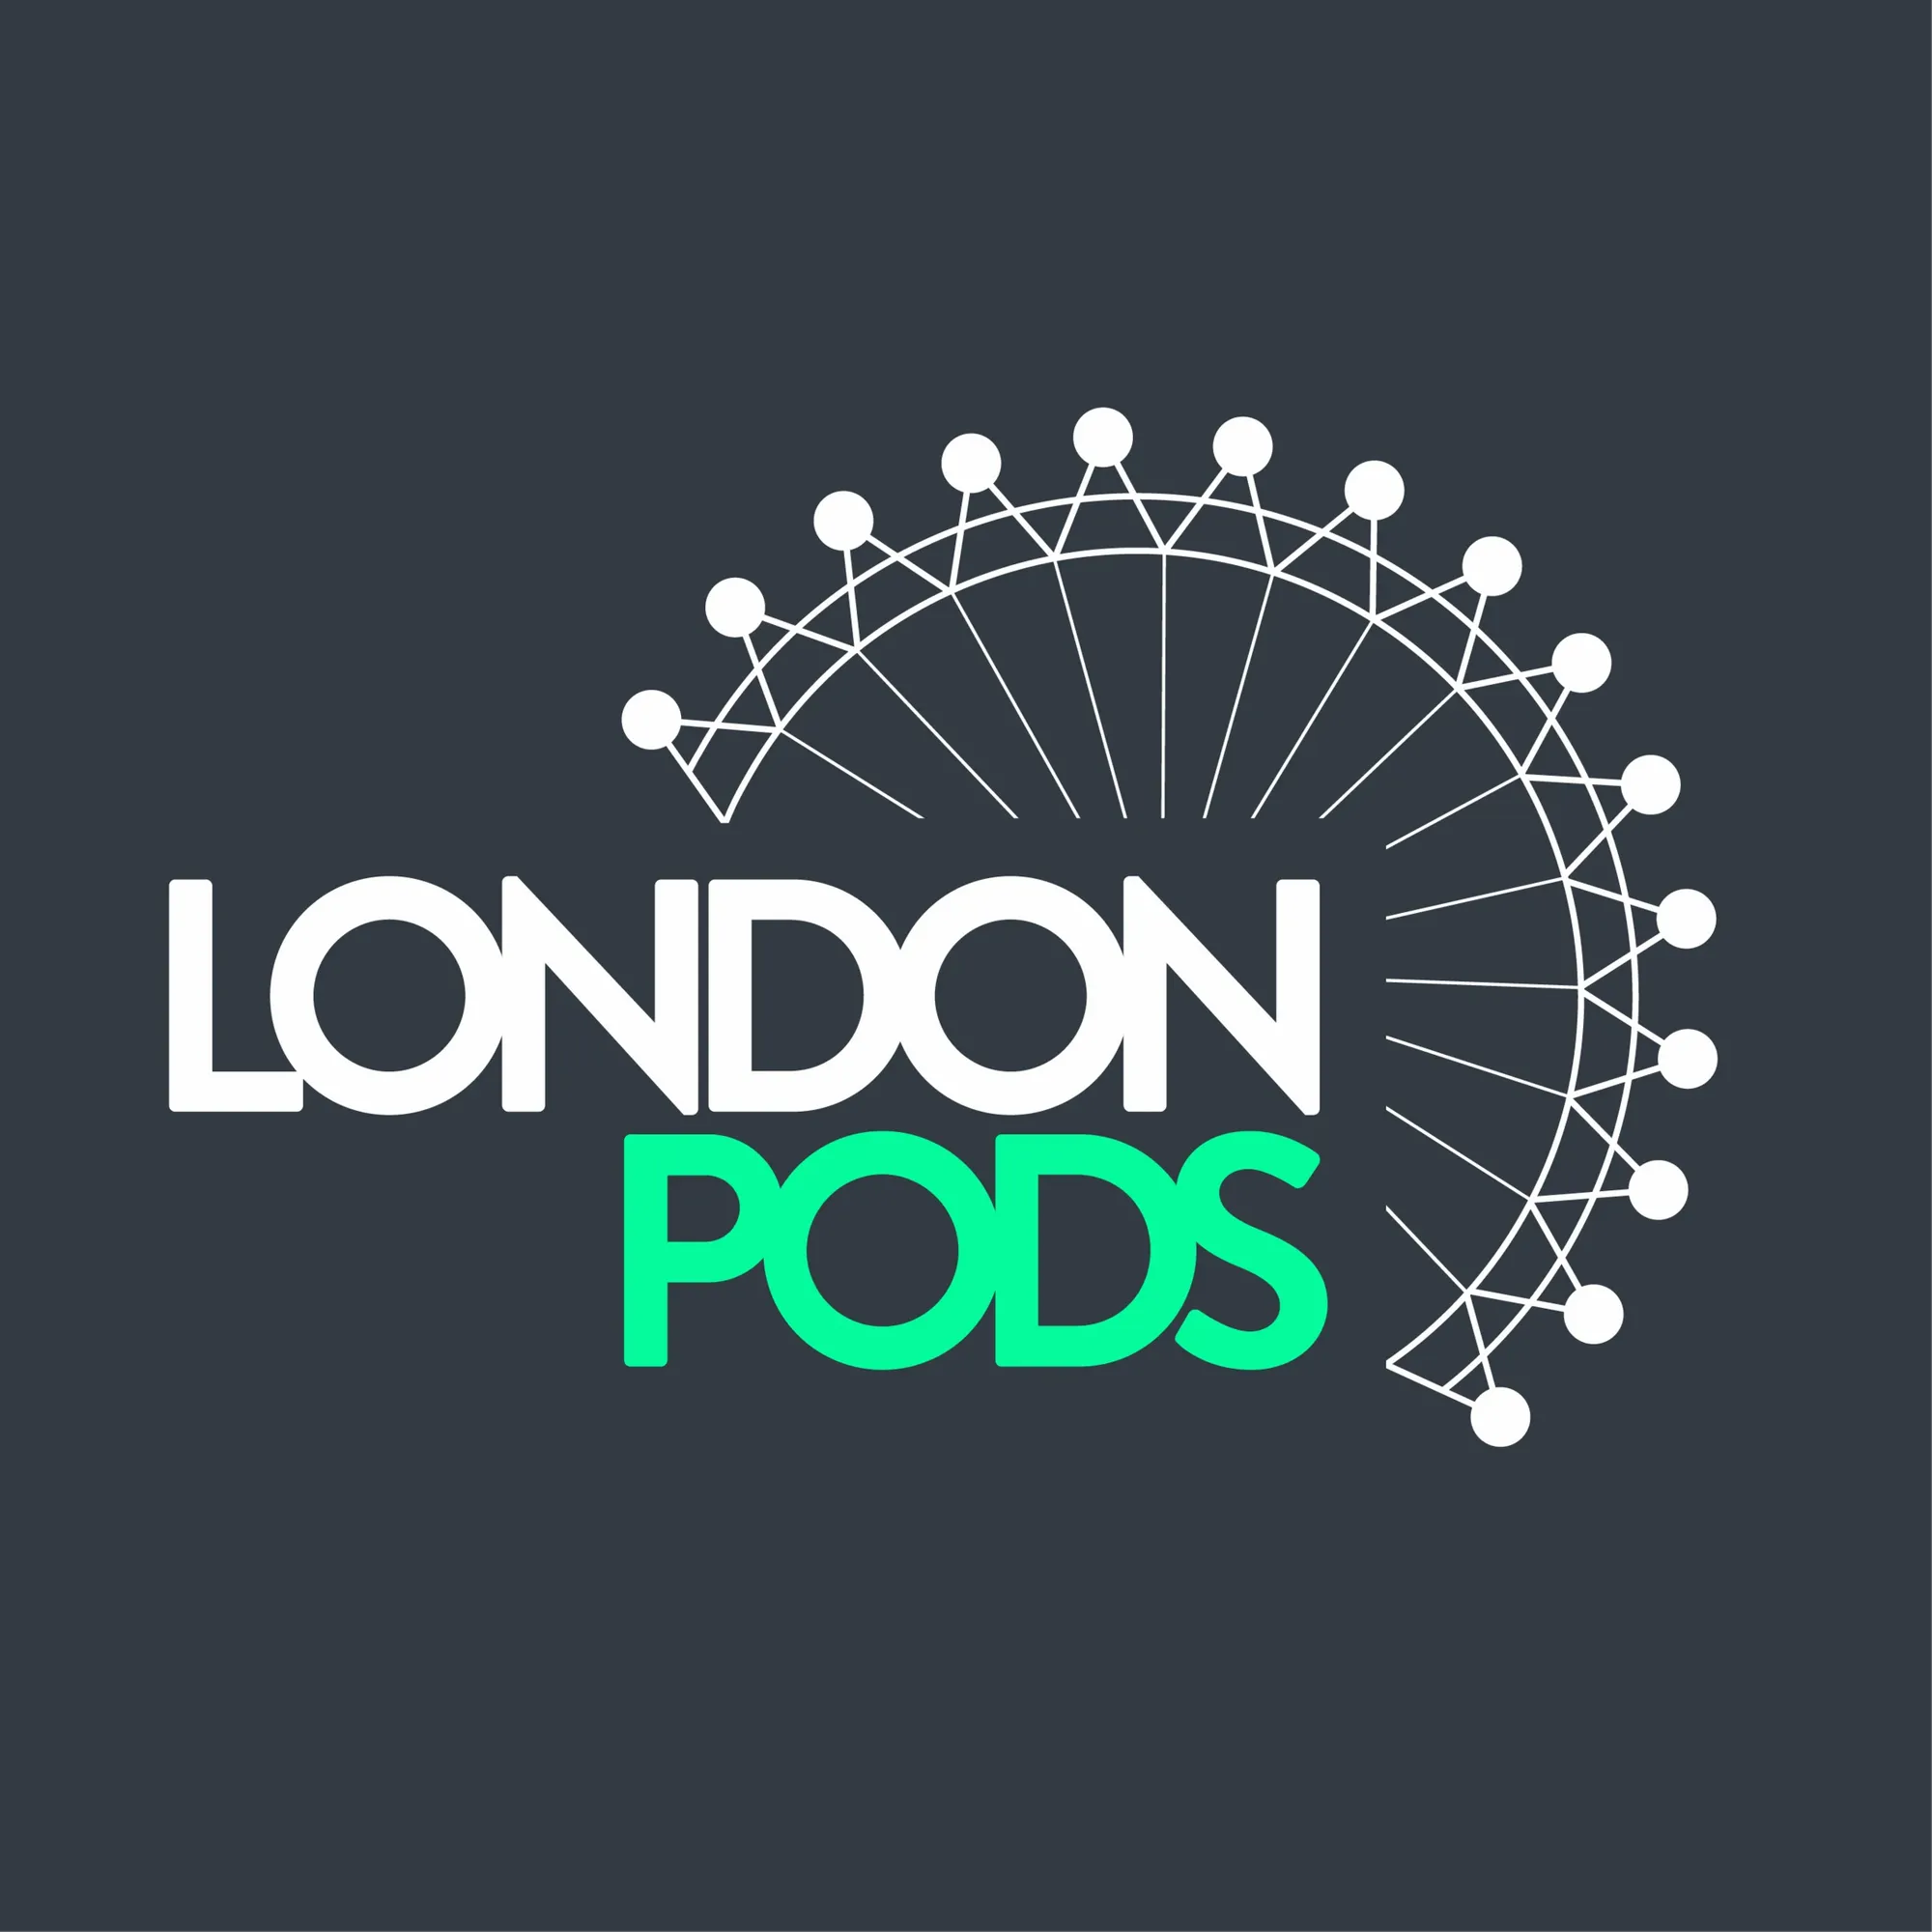 London Pods - Retailer Review